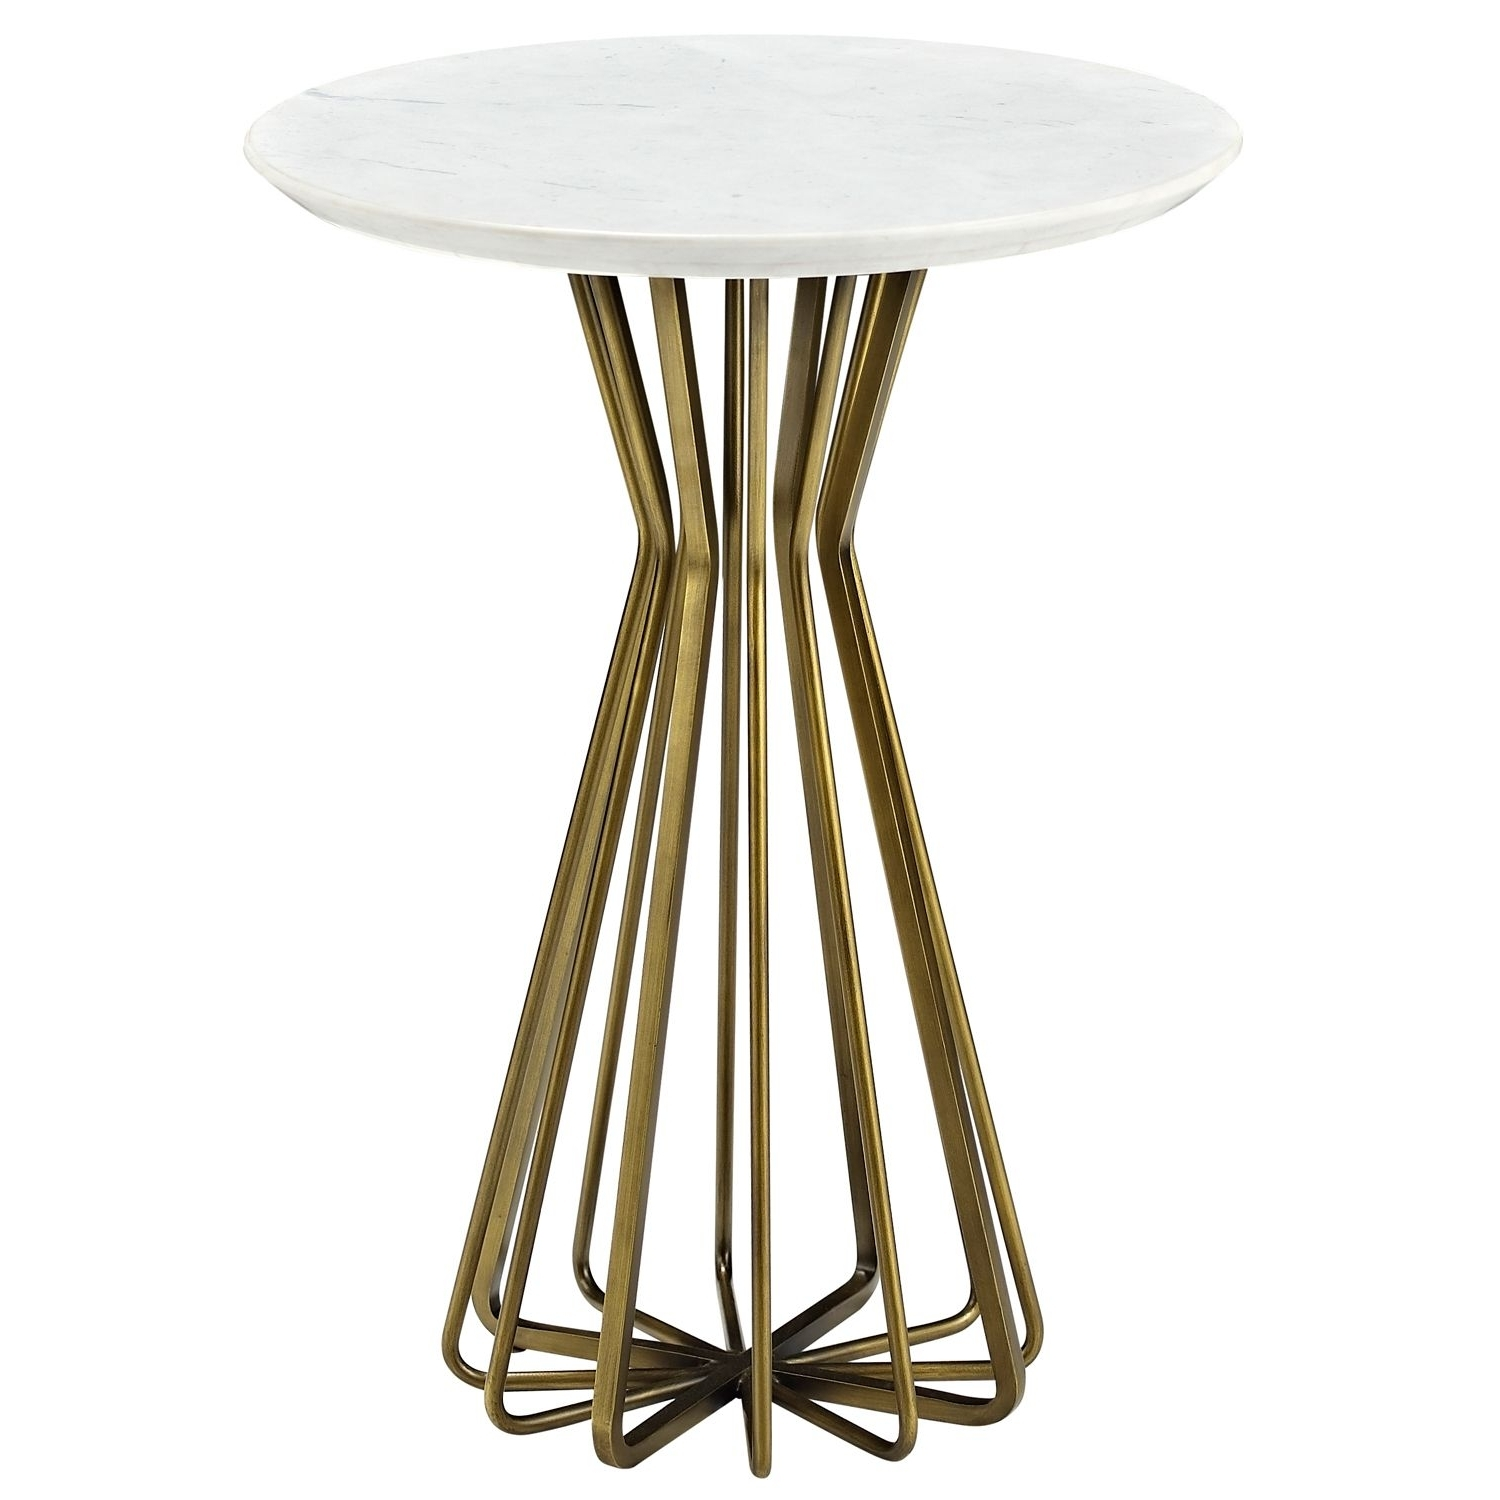 A Compelling Openwork Design Provides The Contemporary Style Of The With Latest Exton Cocktail Tables (Gallery 3 of 20)